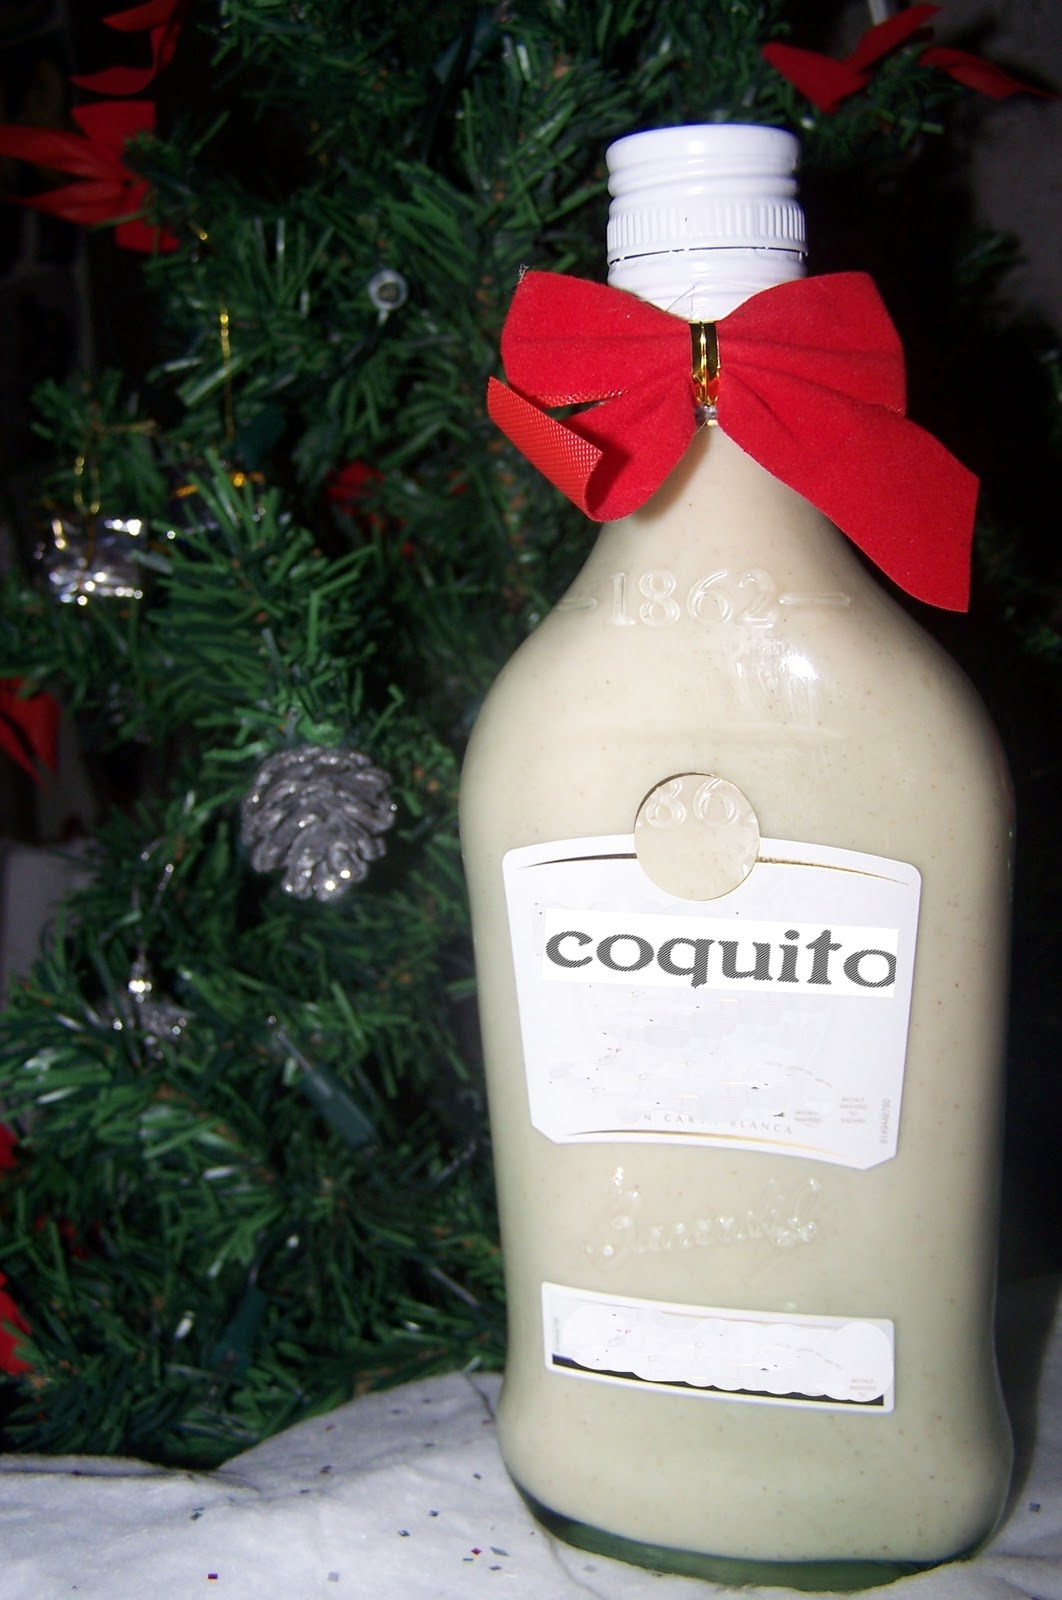 Yes, Coquito!!!!! A delicious coconut cream liqueur which is a holiday ...